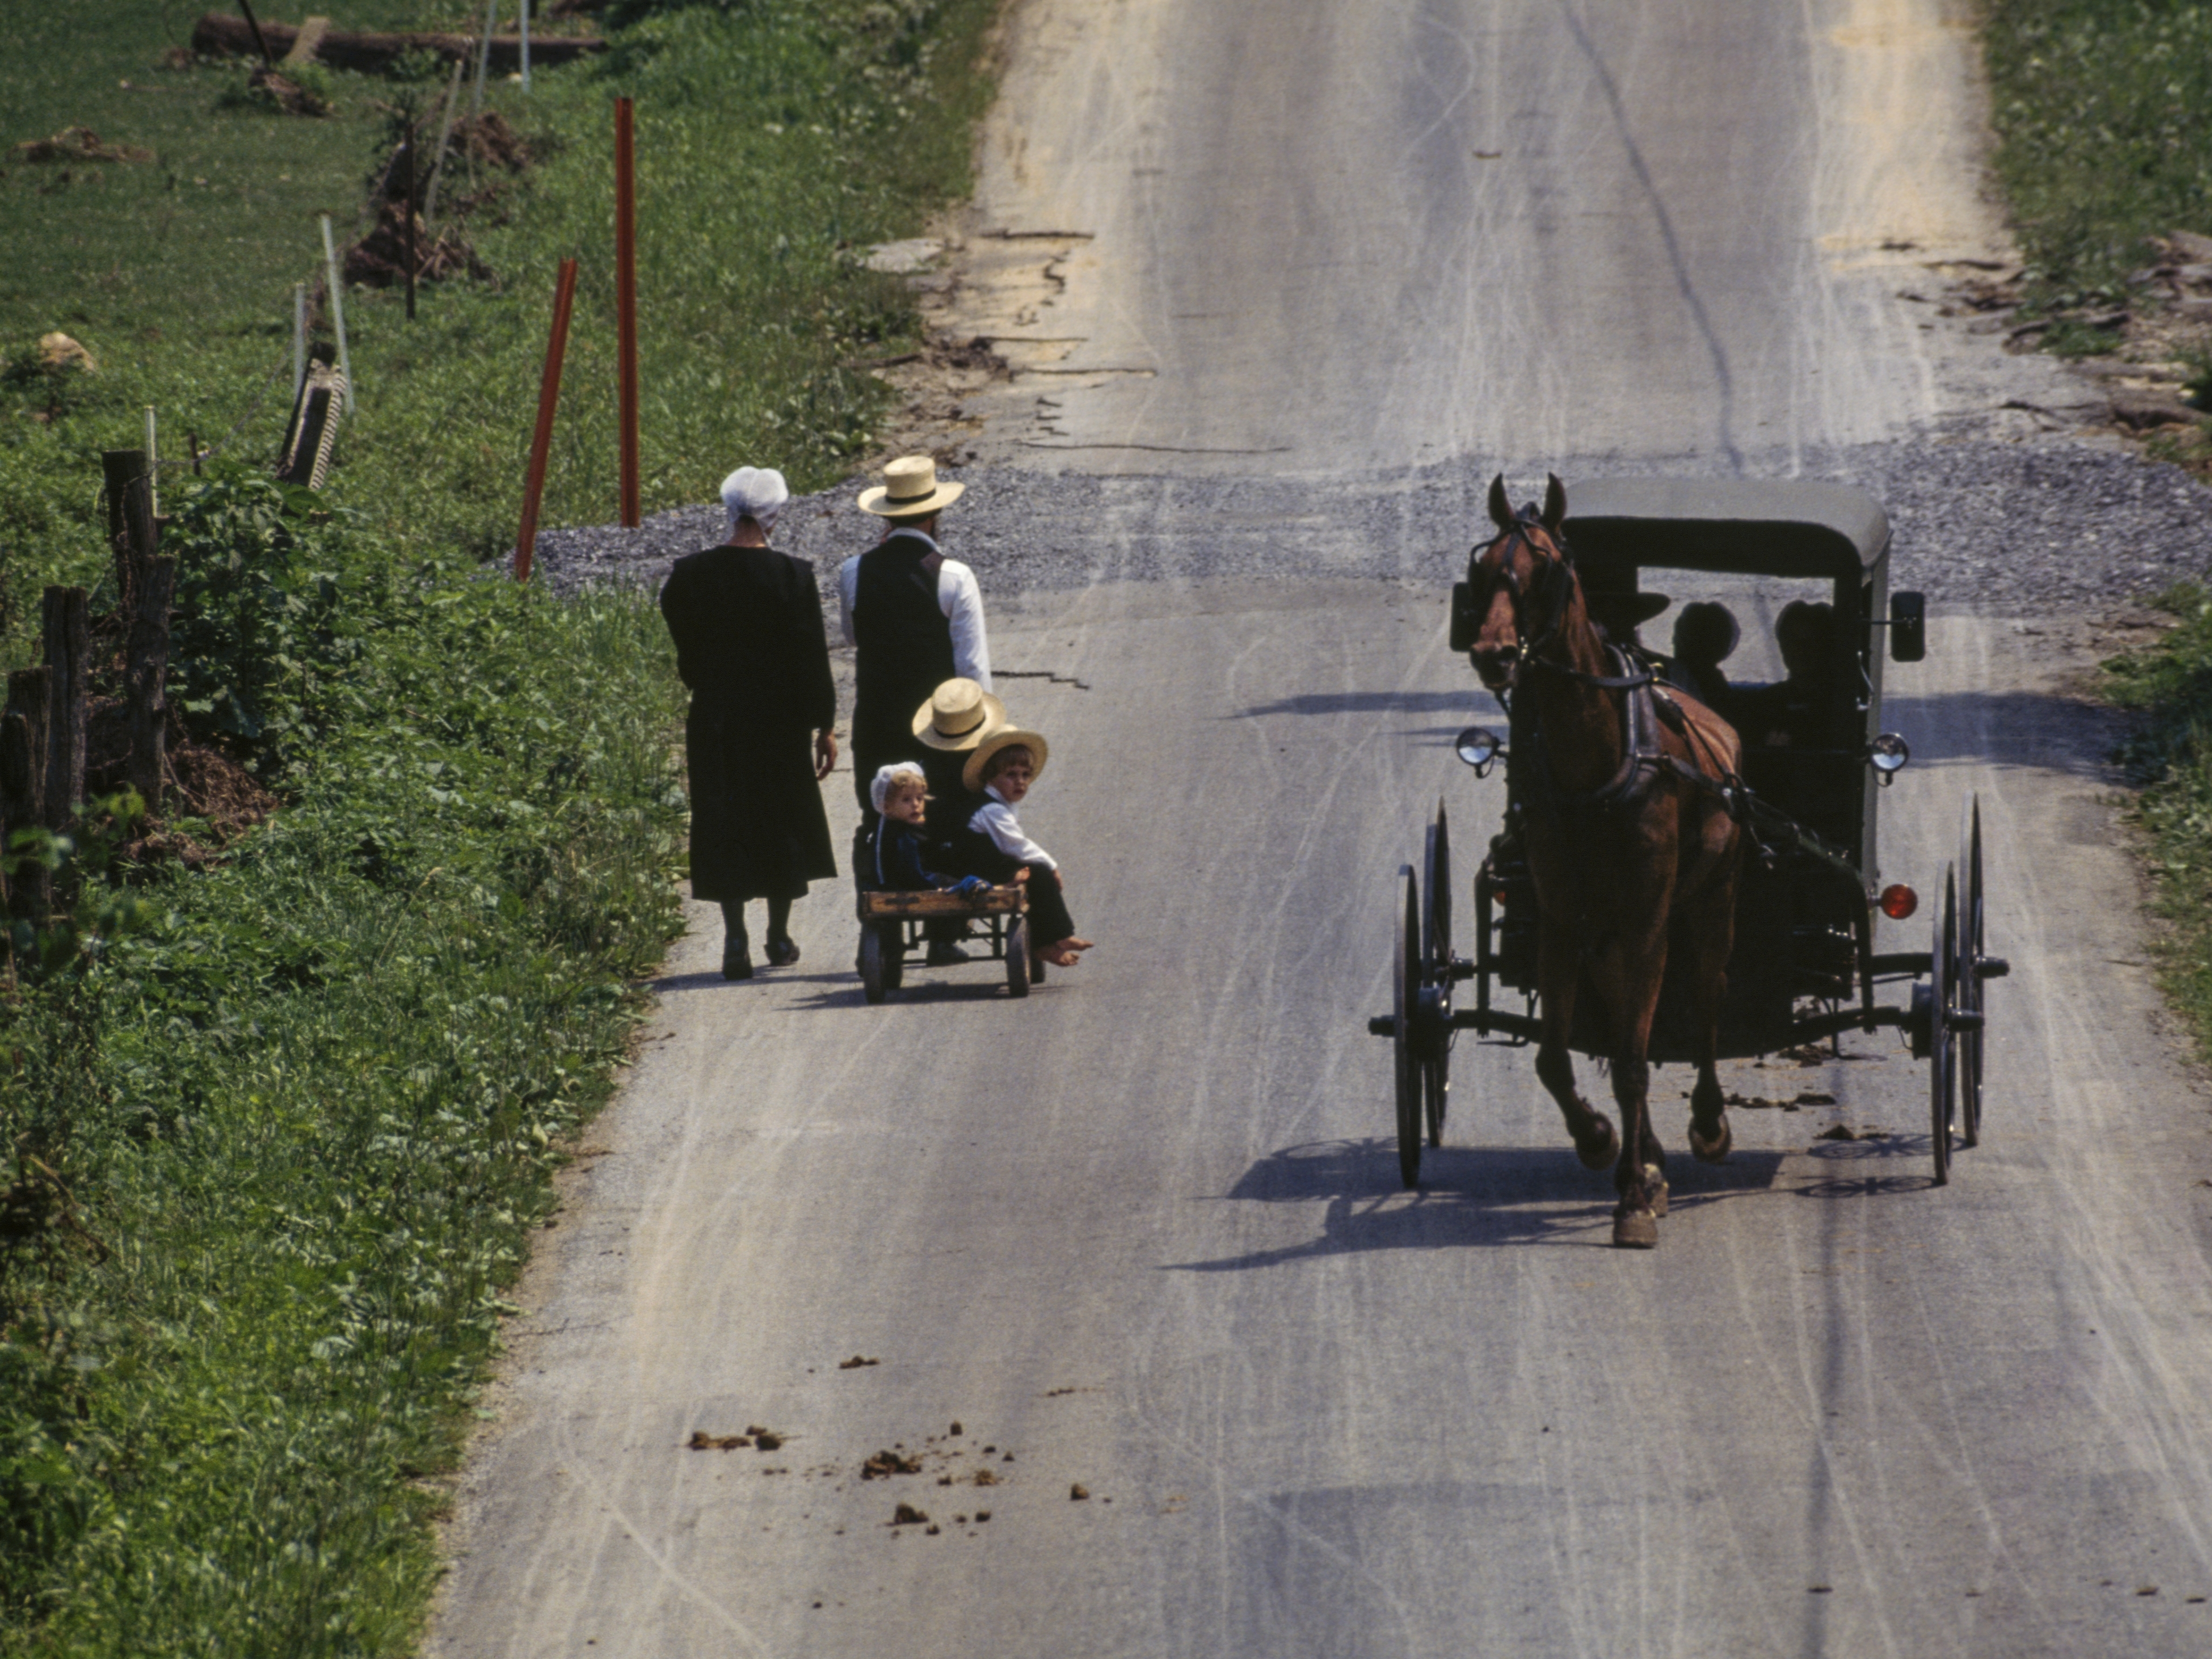 As Amish Leave Farming For Other Work, Some Leave Their Homestead